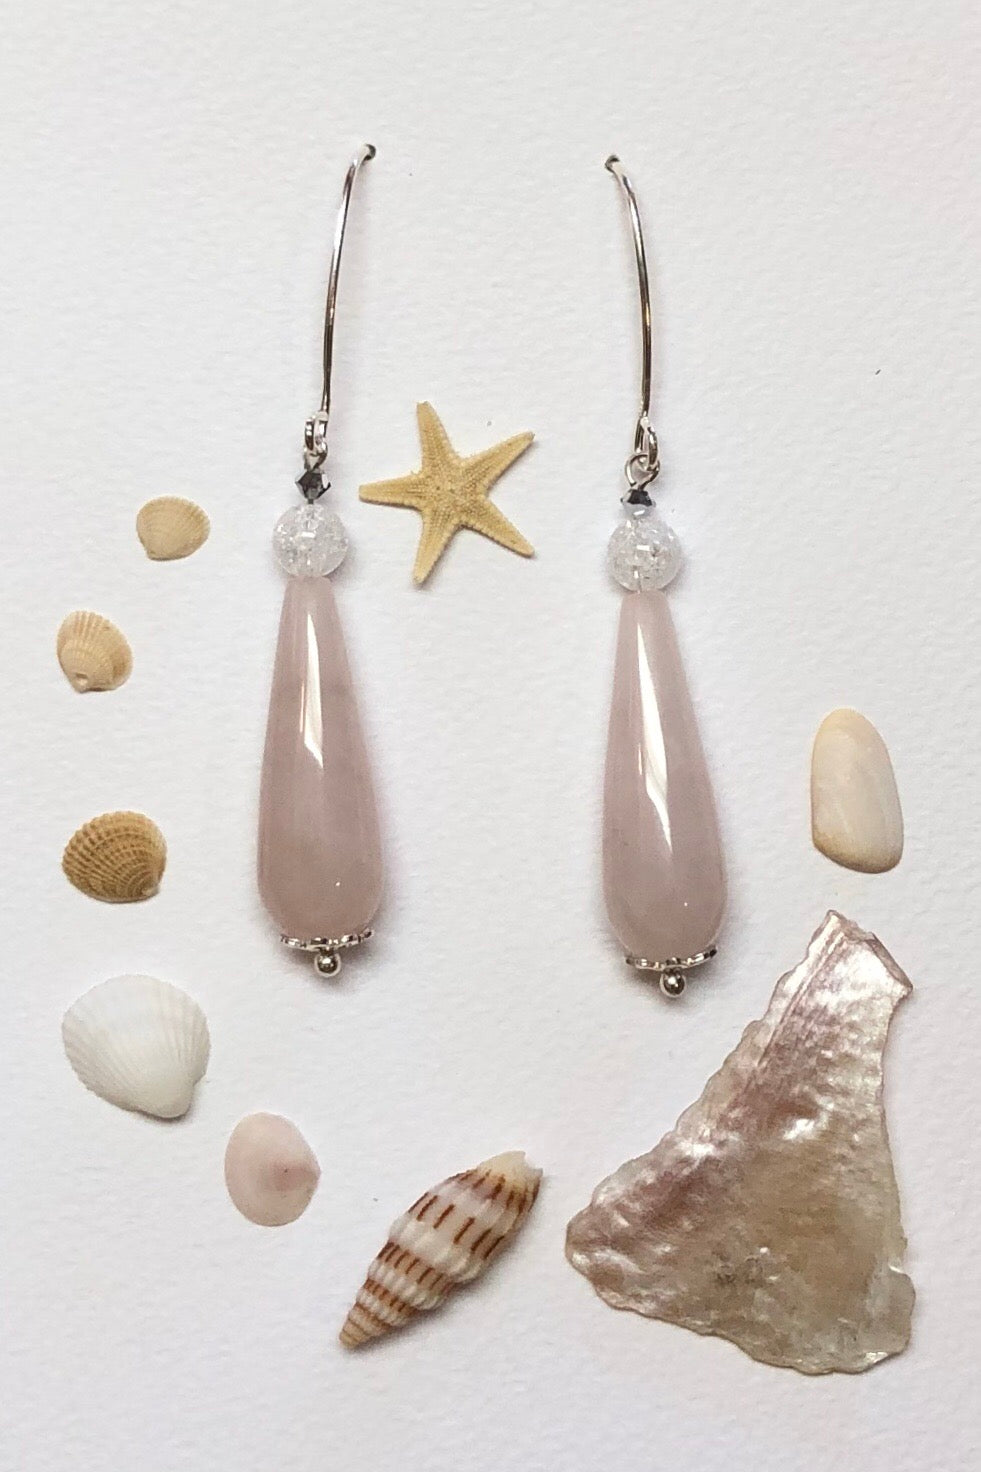 Approximately 6cm length.  Drop style earrings. 925 silver hook earrings. Pale pink Rose quartz teardrop shaped stone with a single crackle rock crystal bead on top.